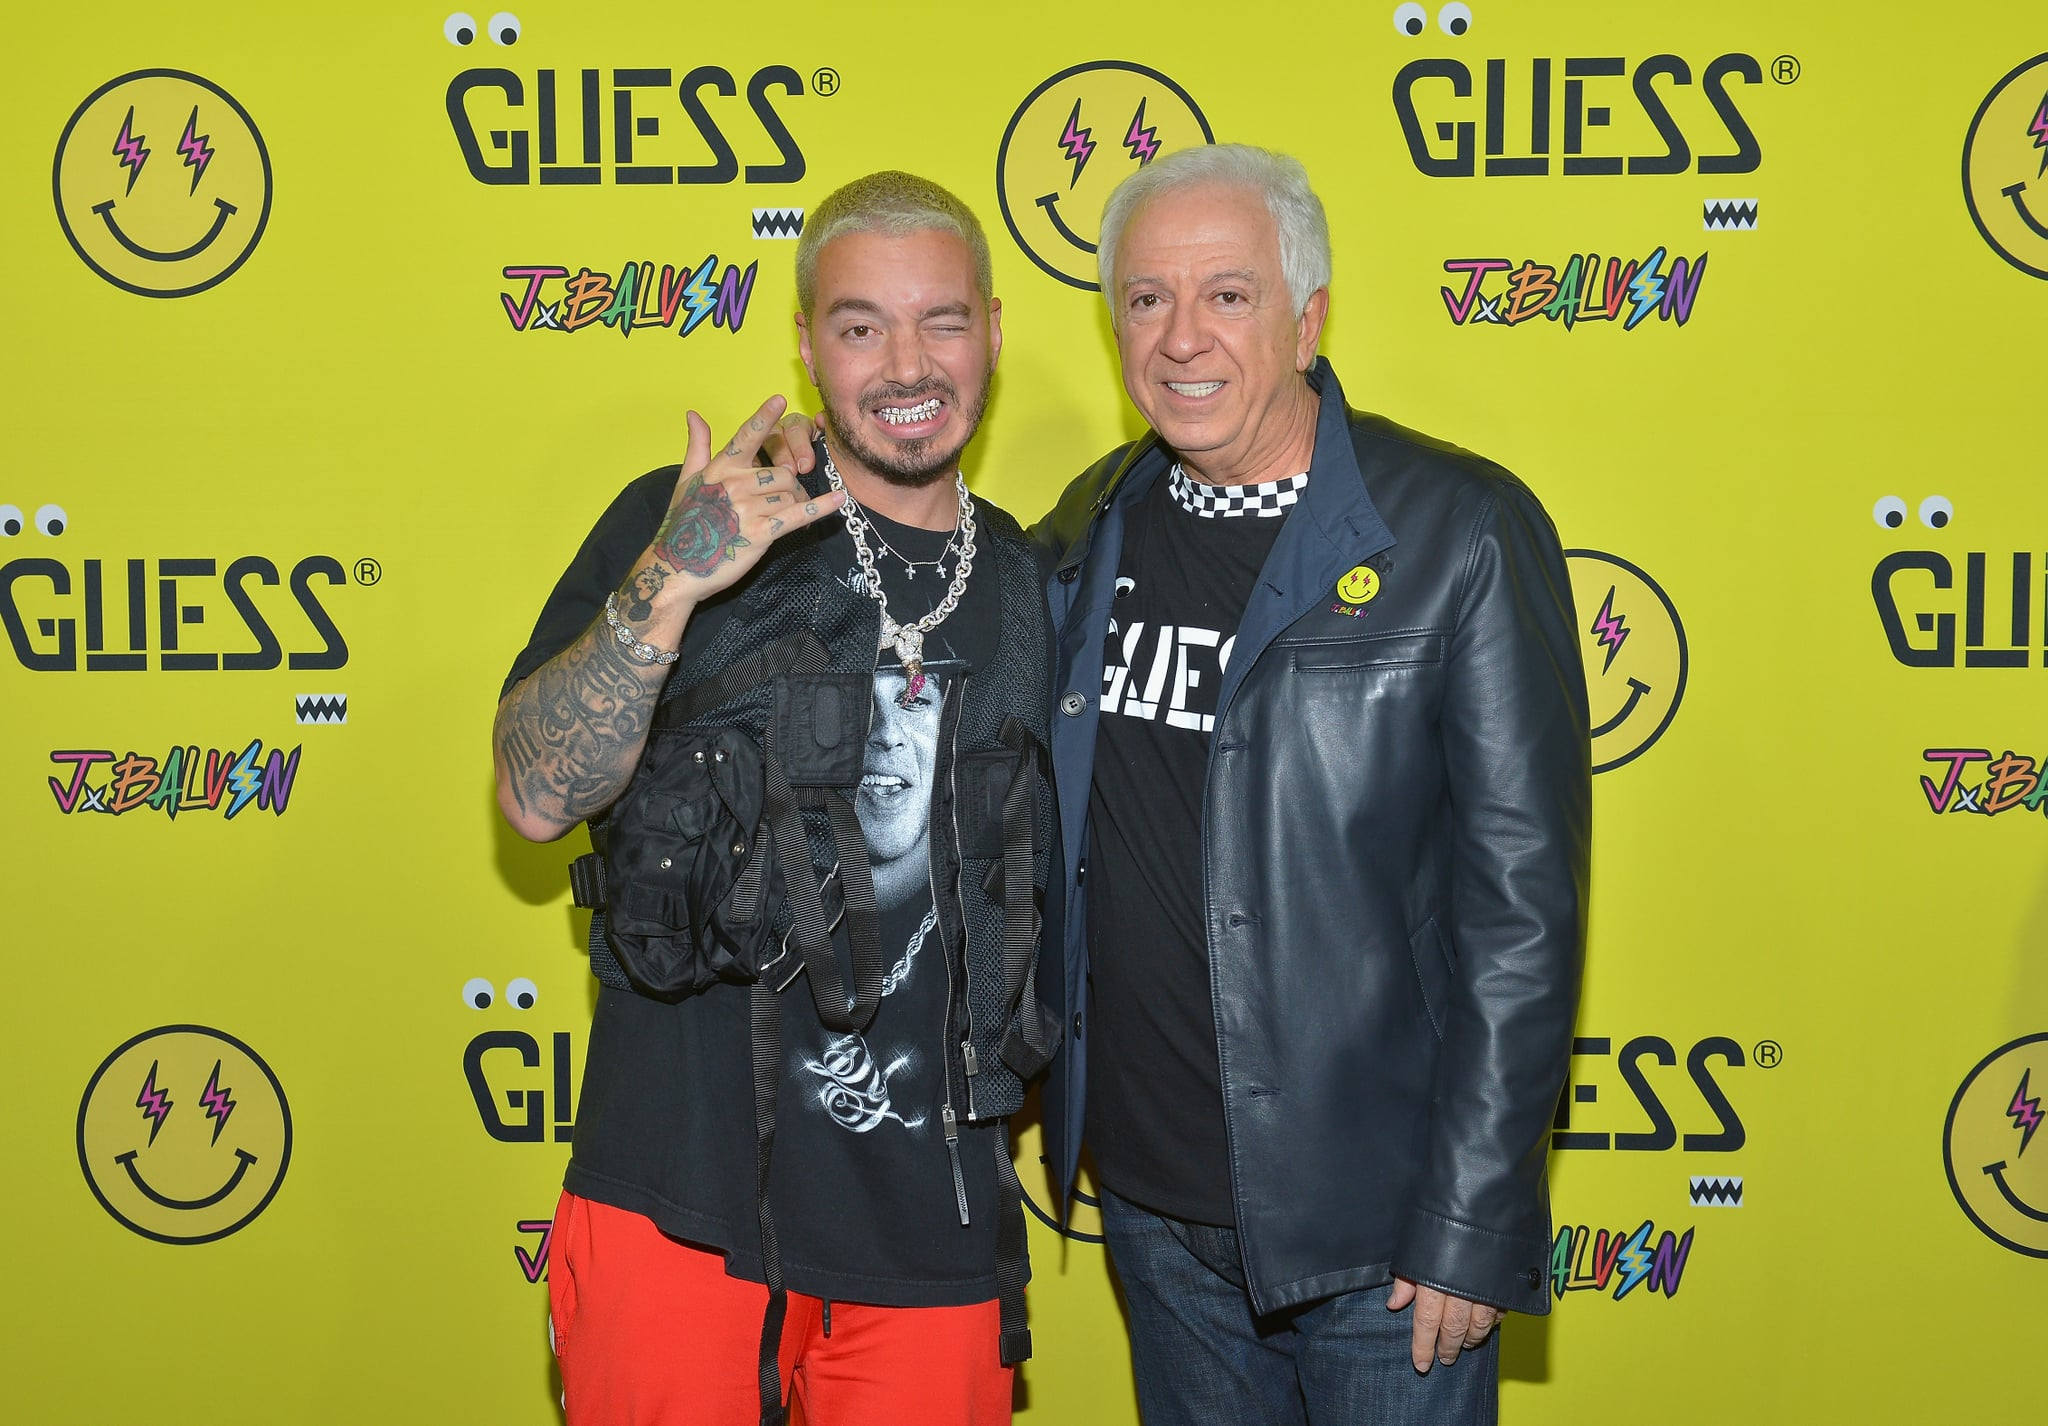 LOS ANGELES, CA - FEBRUARY 08:  J Balvin and Paul Marciano attend GUESS x J Balvin launch party on February 8, 2019 in Los Angeles, California.  (Photo by Donato Sardella/Getty Images for GUESS)